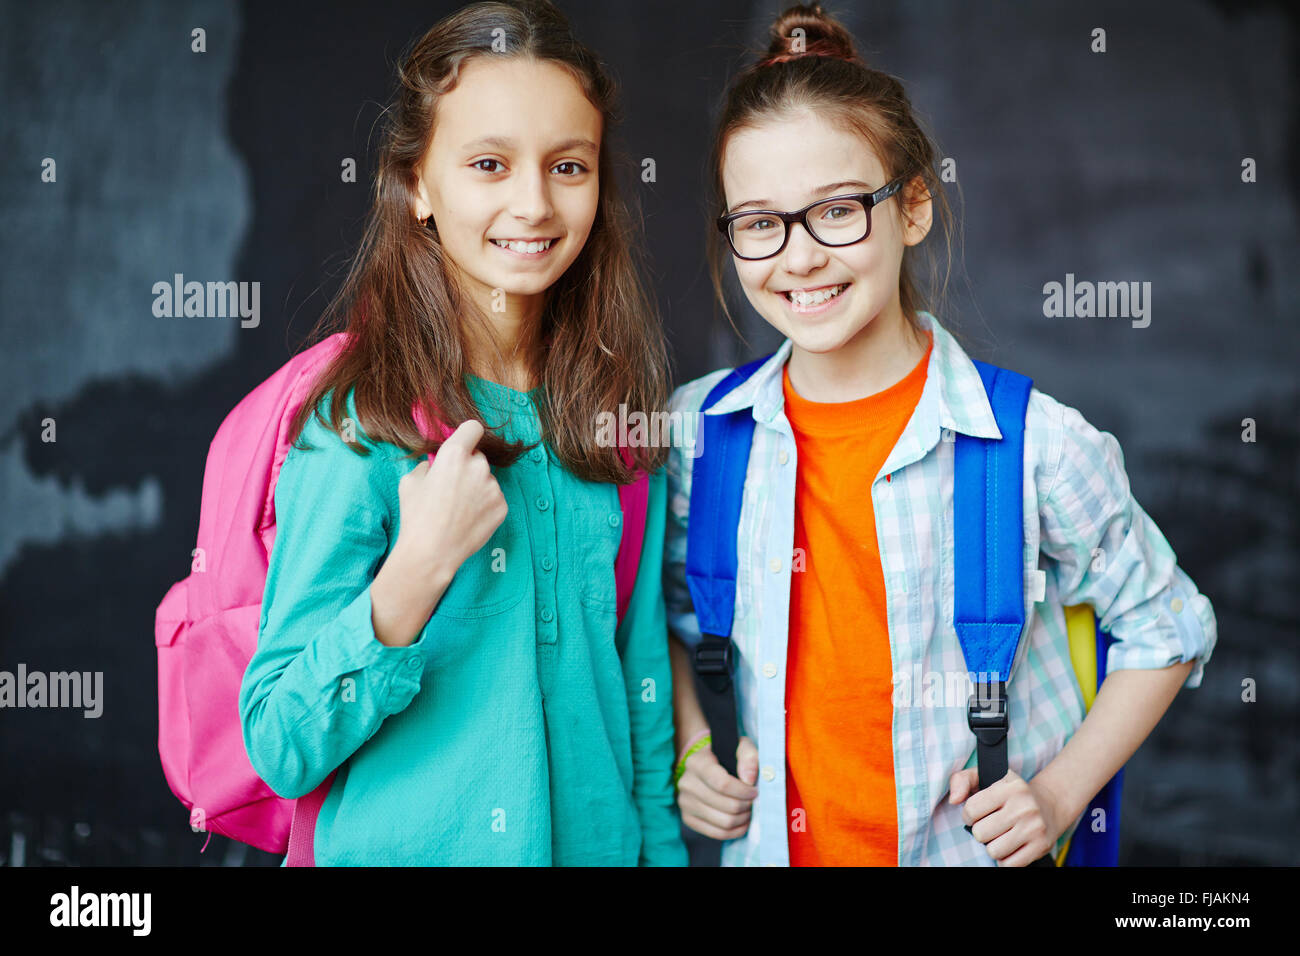 Portrait of two little girls smiling at camera - Stock Image